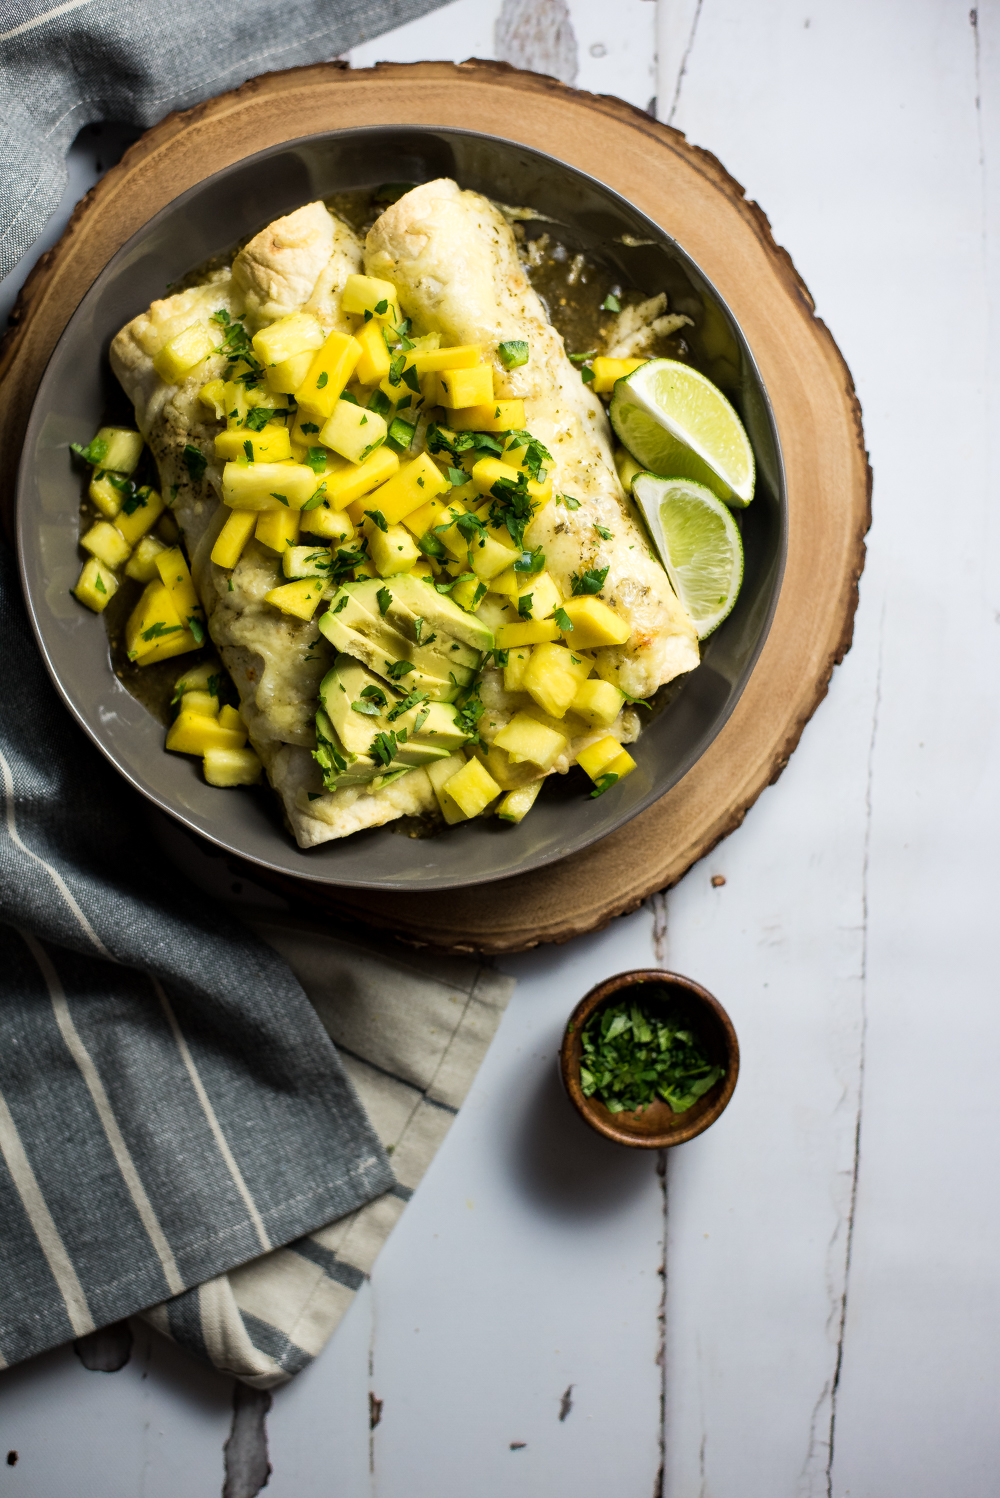 Take your enchiladas to the next level and make these tropical chipotle chicken enchiladas with mango salsa. They will be a hit at the dinner table!